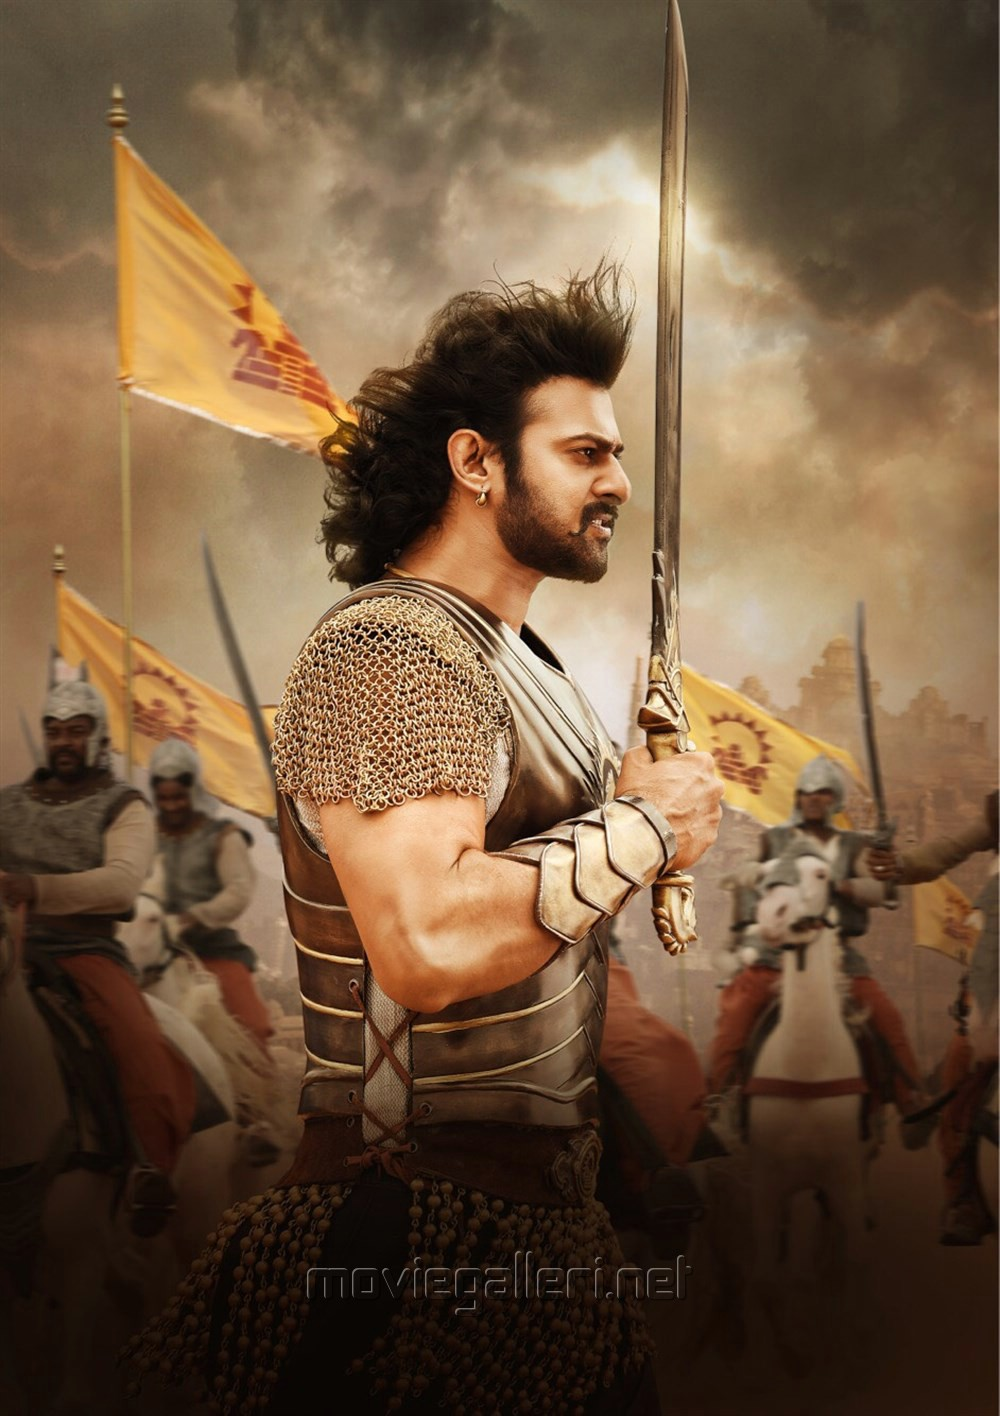 Hd wallpaper bahubali 2 - Baahubali 2 Prabhas Images Hd